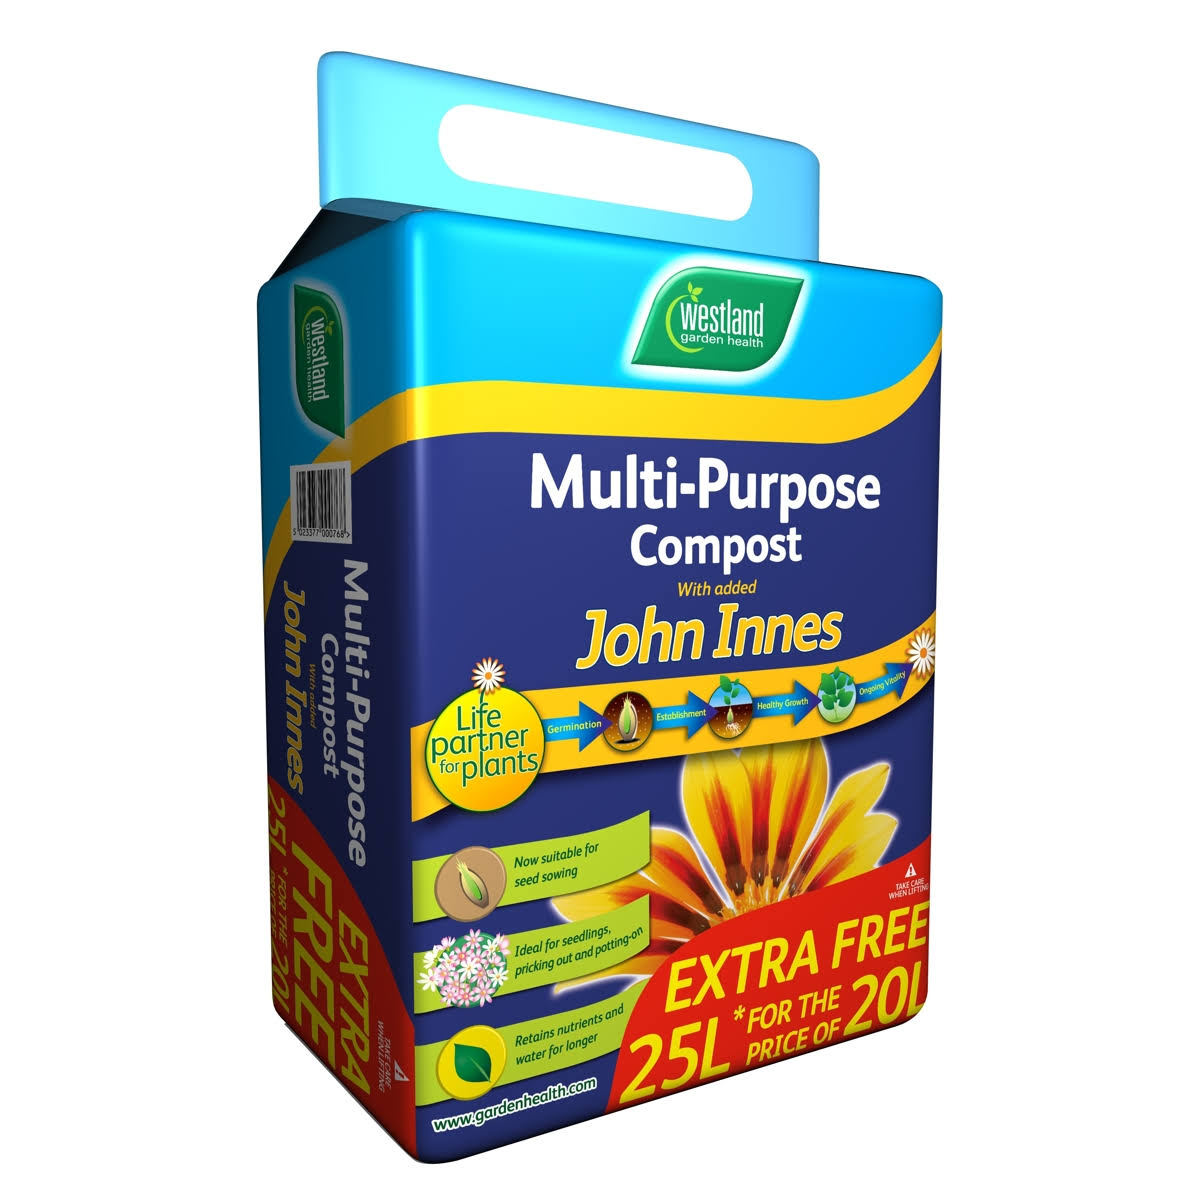 Westland Multi-Purpose Compost - with added John Innes, 25L